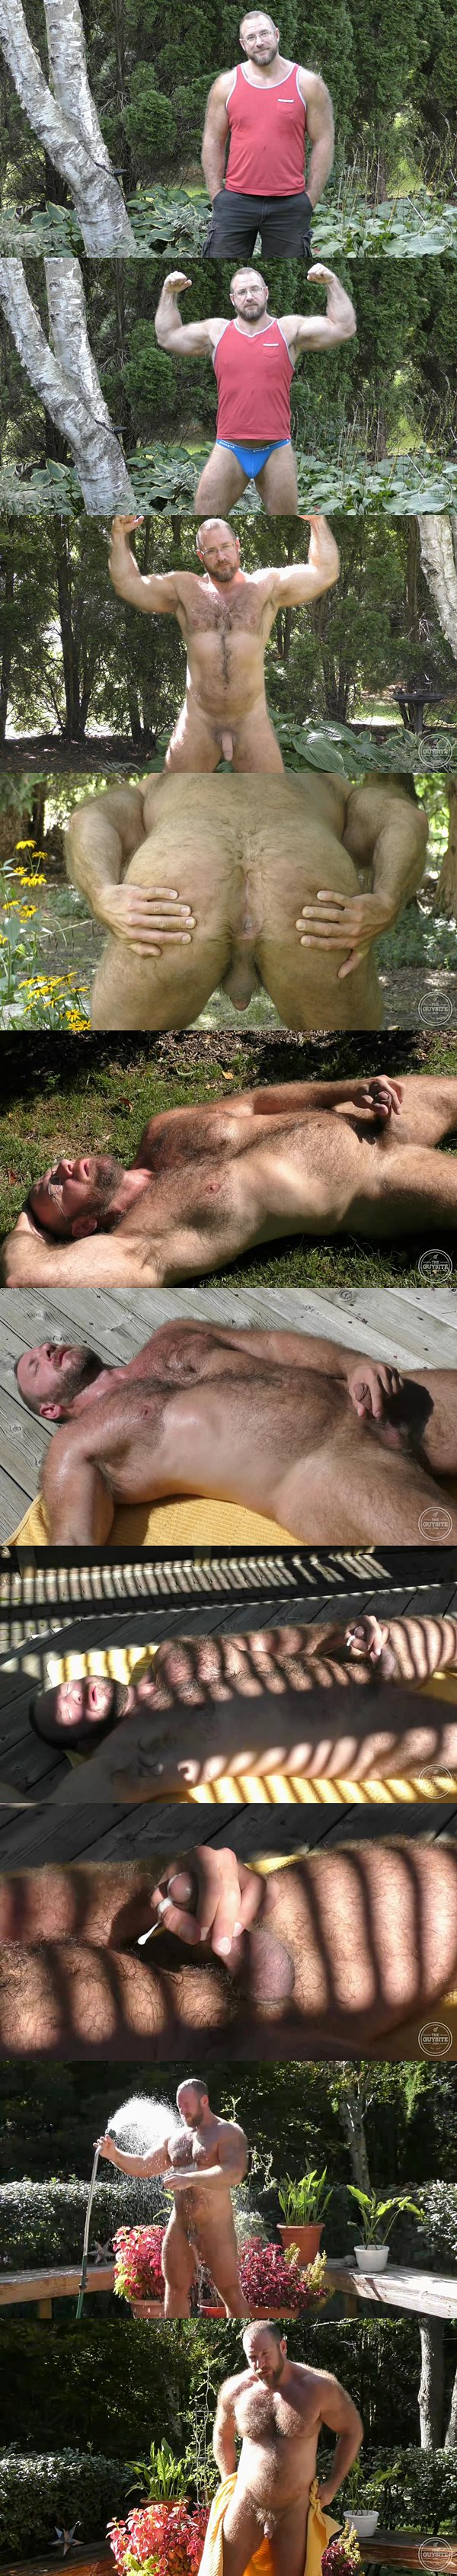 Hot daddy bear Zac Masterson shoots his sticky loads under sunshine in Muscle Bear Outdoors at Theguysite